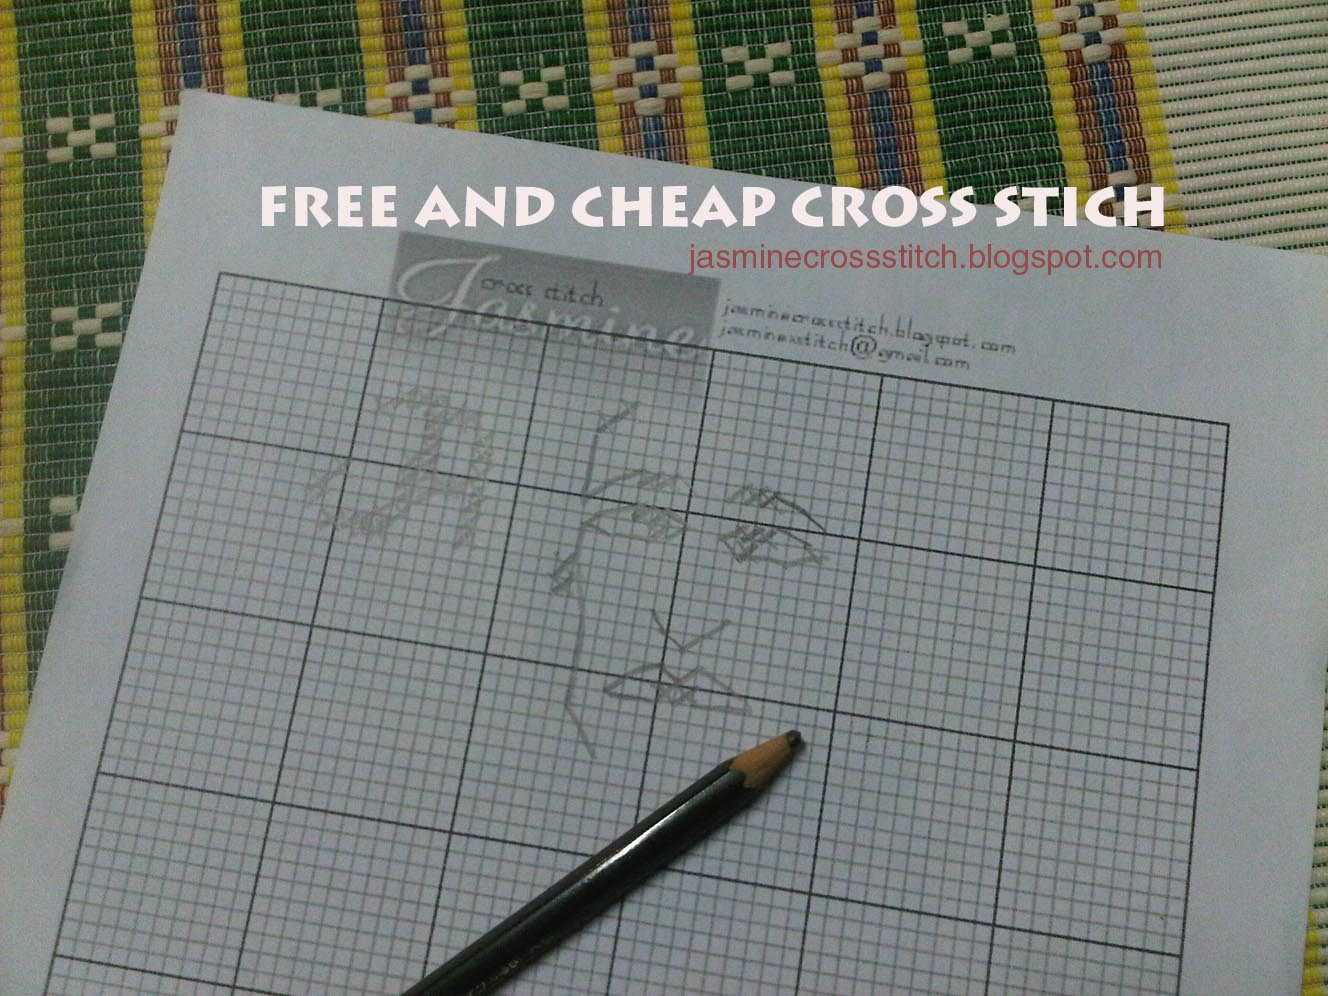 How To Make Your Own Cross Stitch Pattern Unique Design